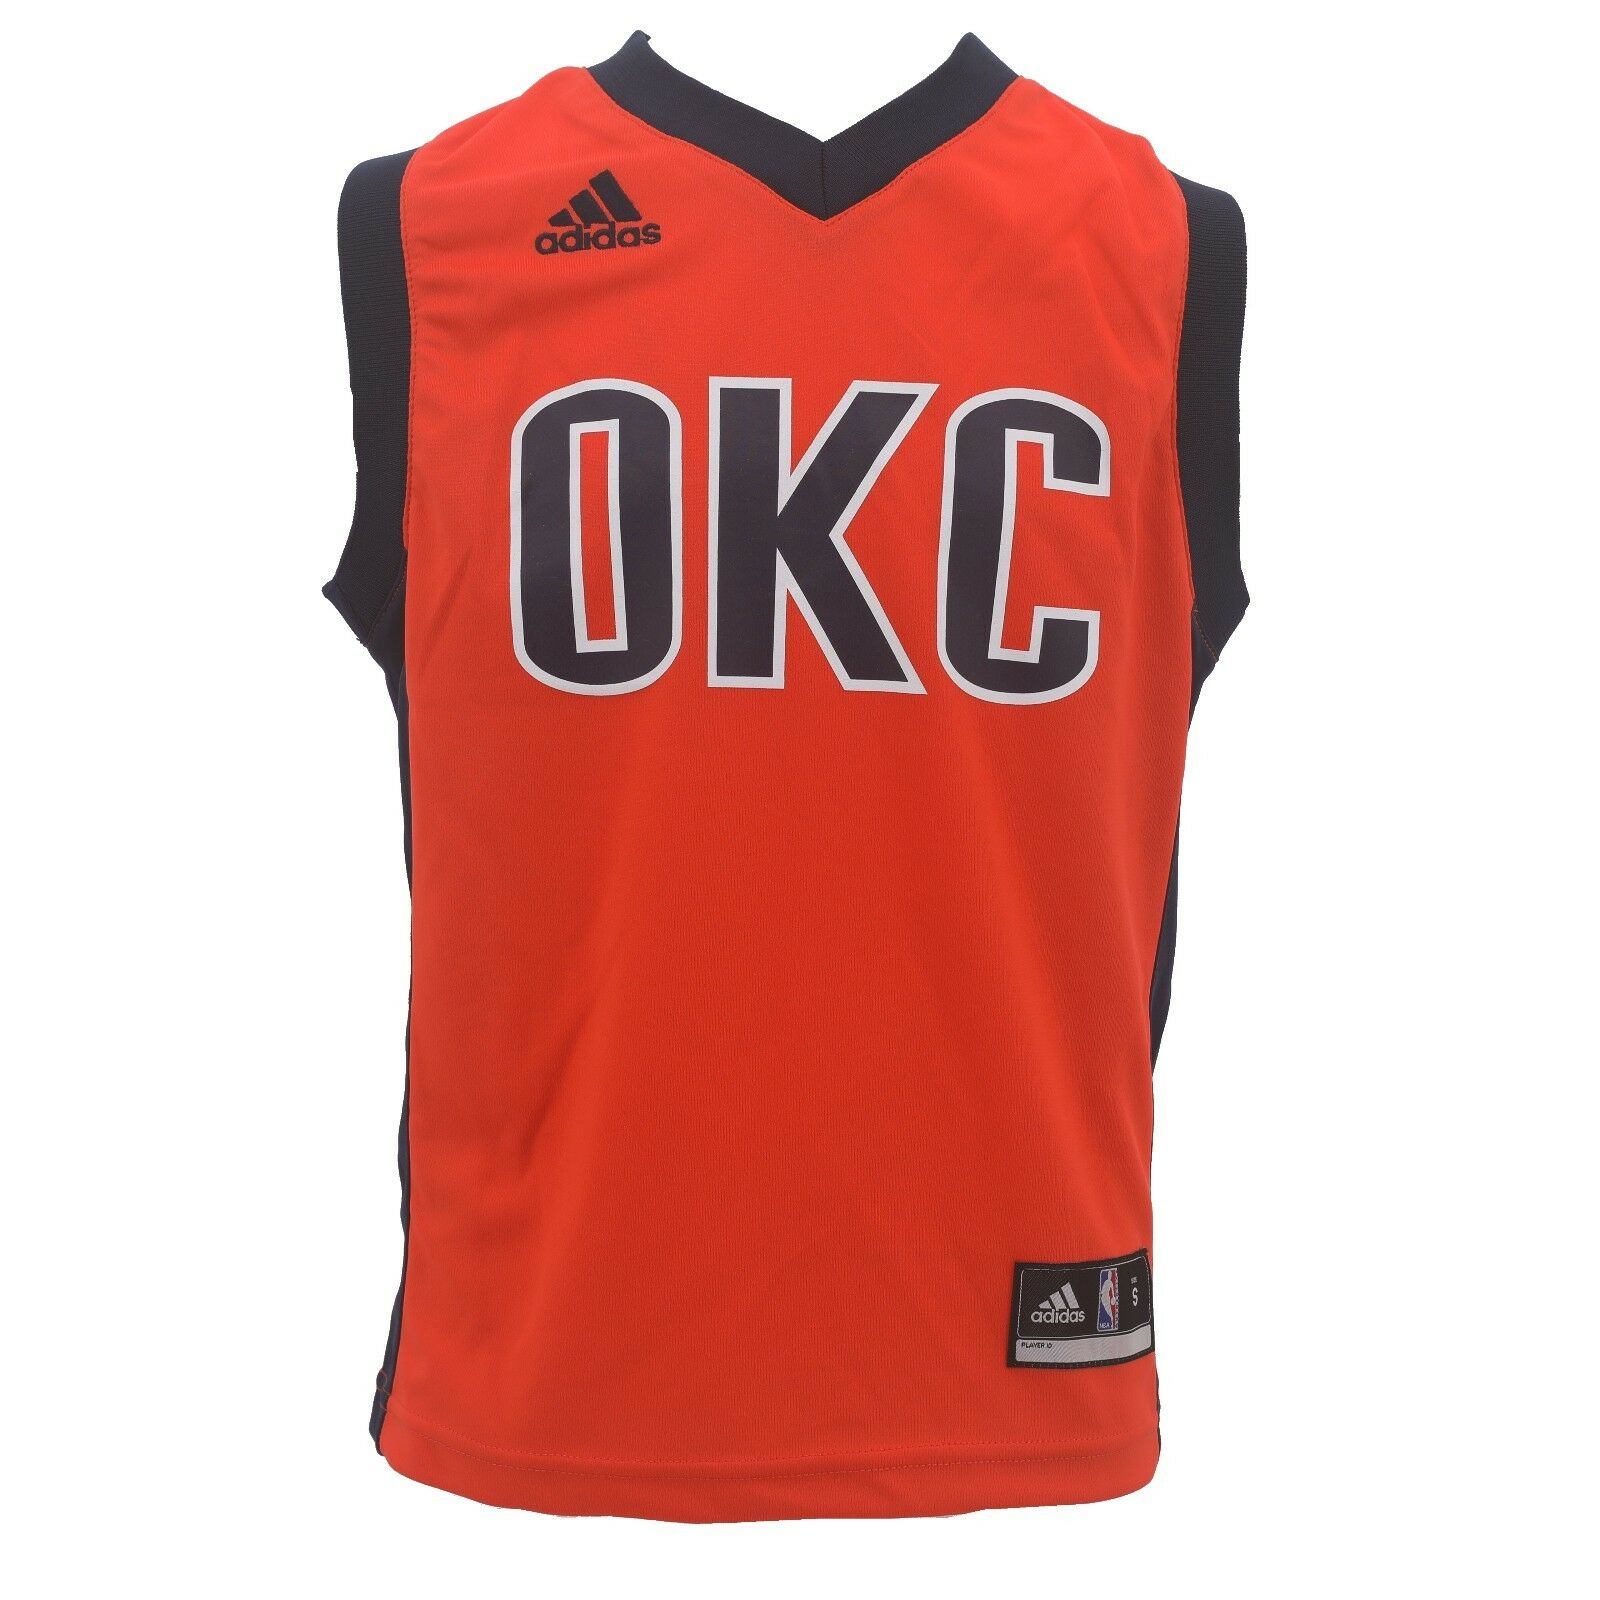 0b2581b50 NBA Oklahoma City Thunder Kids Youth Size Adidas Official Jersey New With  Tags